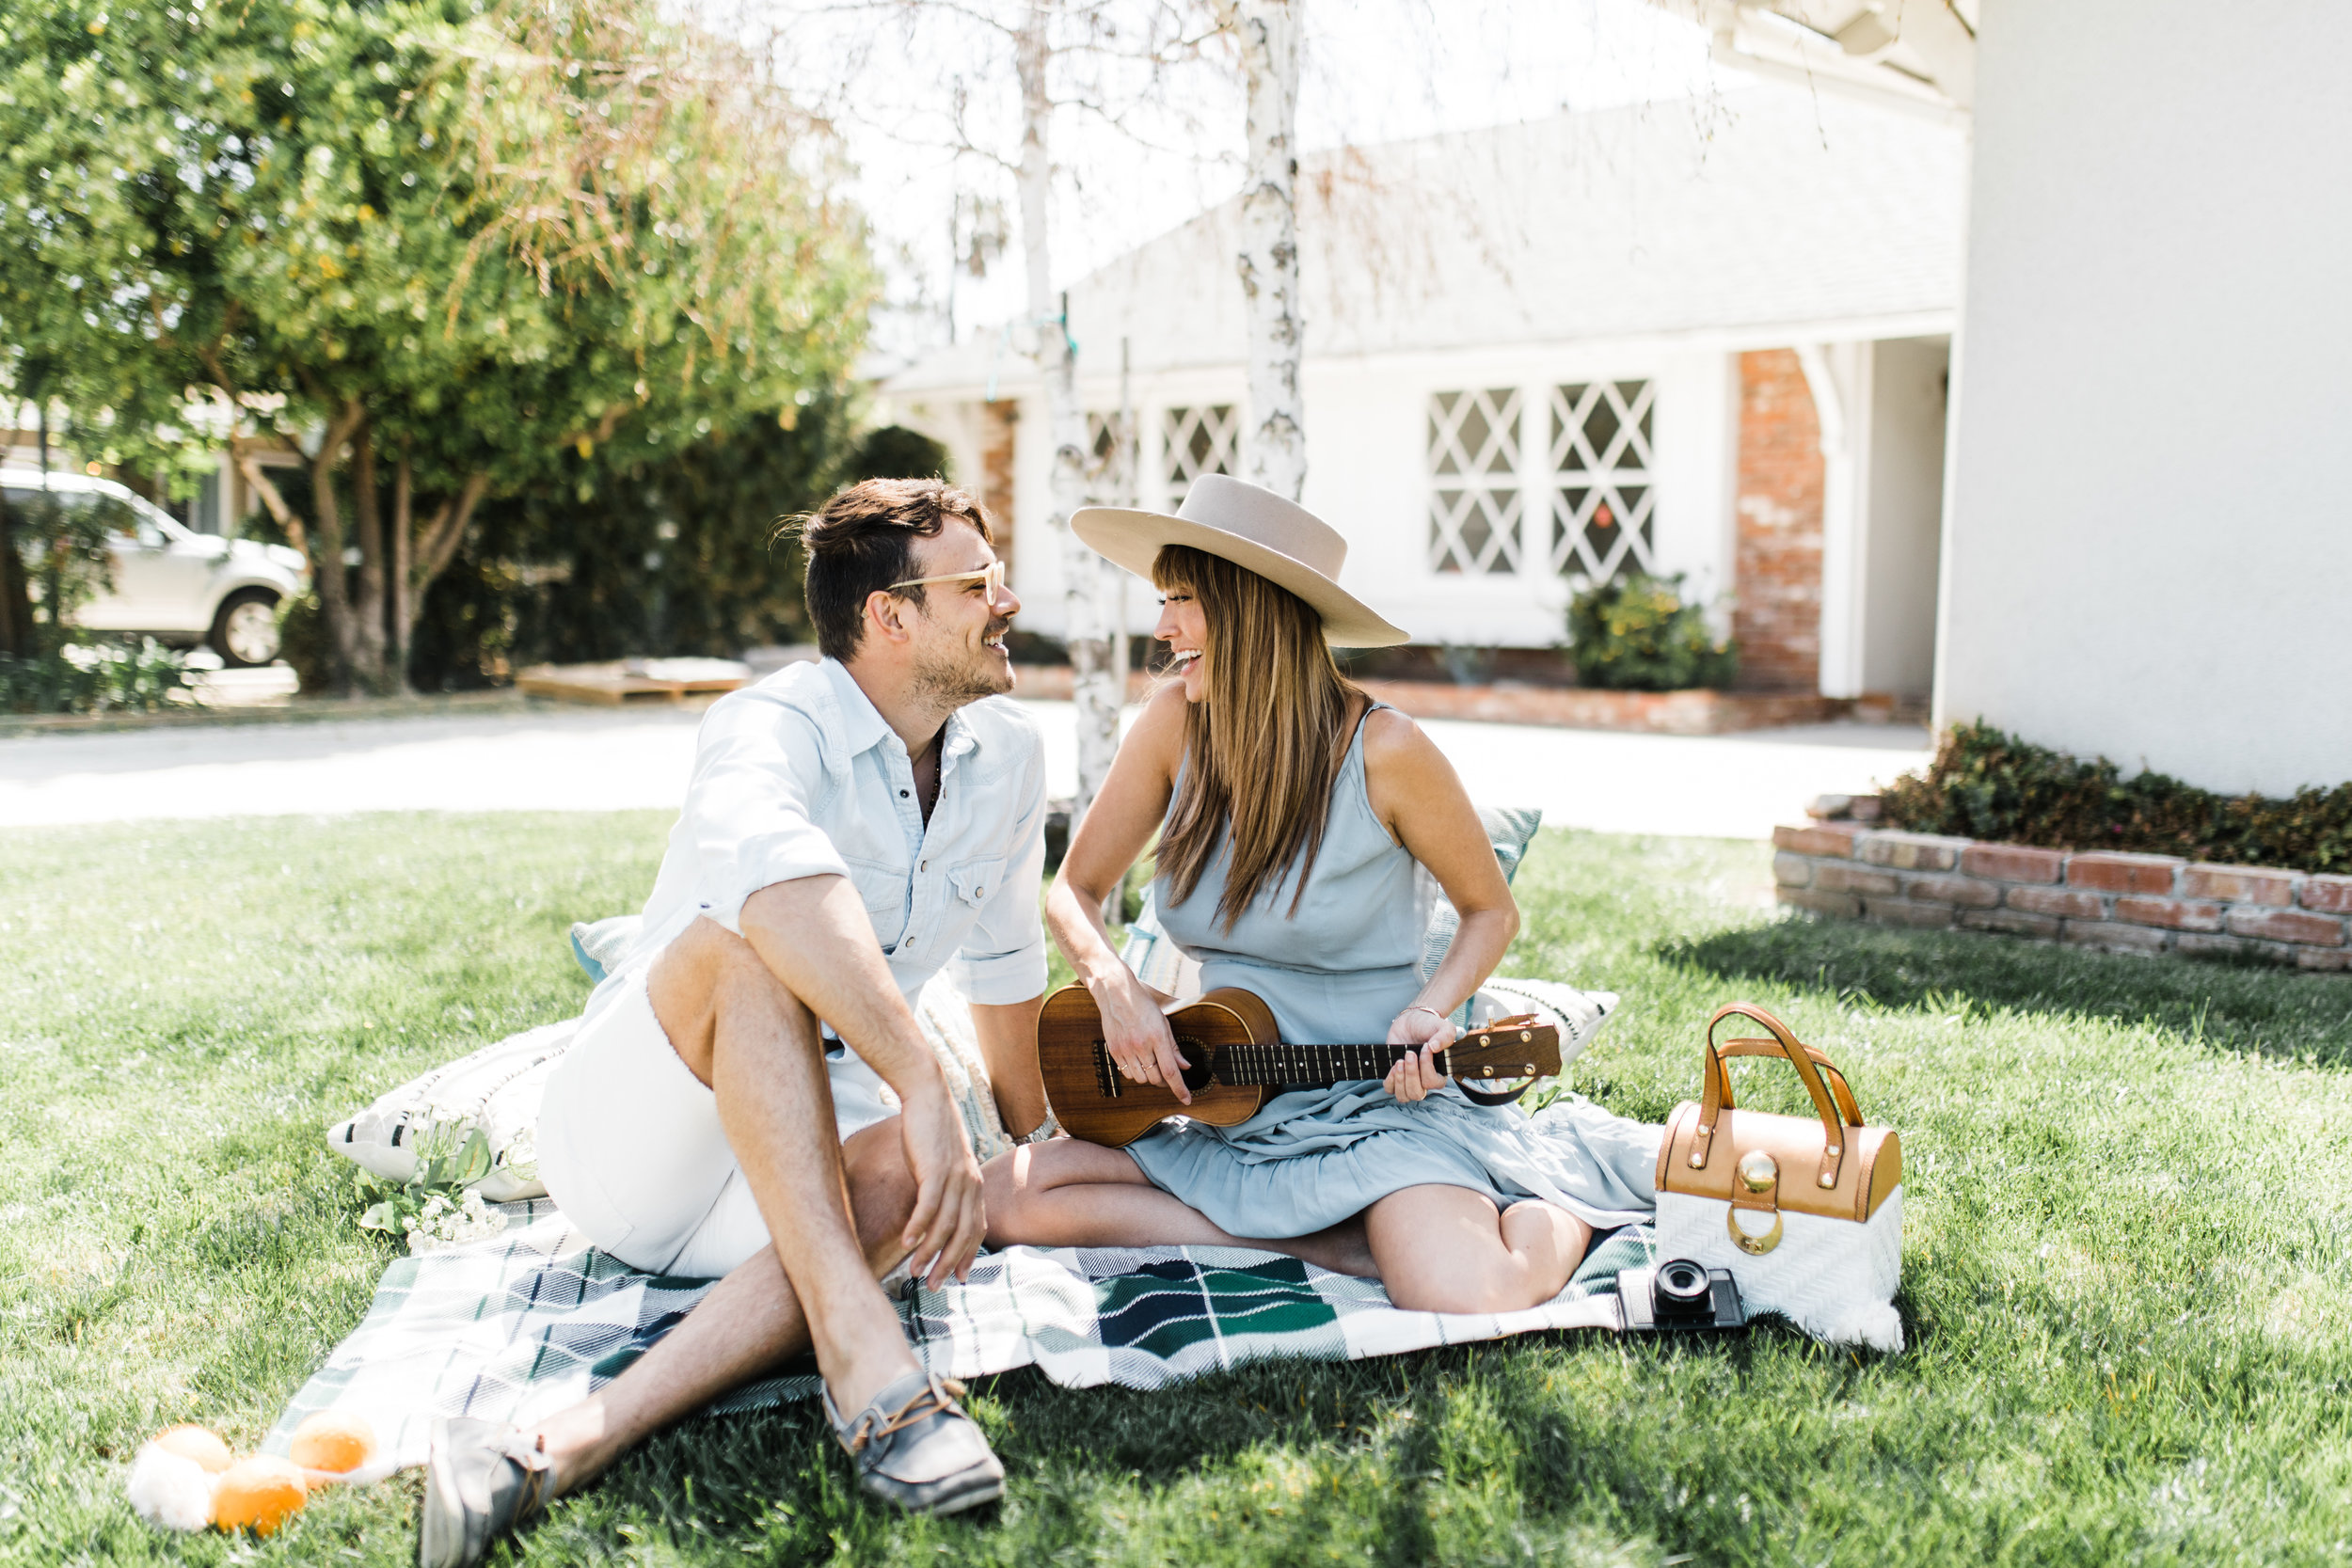 Fernanda&Mariano-Clarisse-Rae-Photo-Video-Spring-Inspired-Southern-California-Wedding-Photographer-Los-Angeles-Engagement-Shoot_10